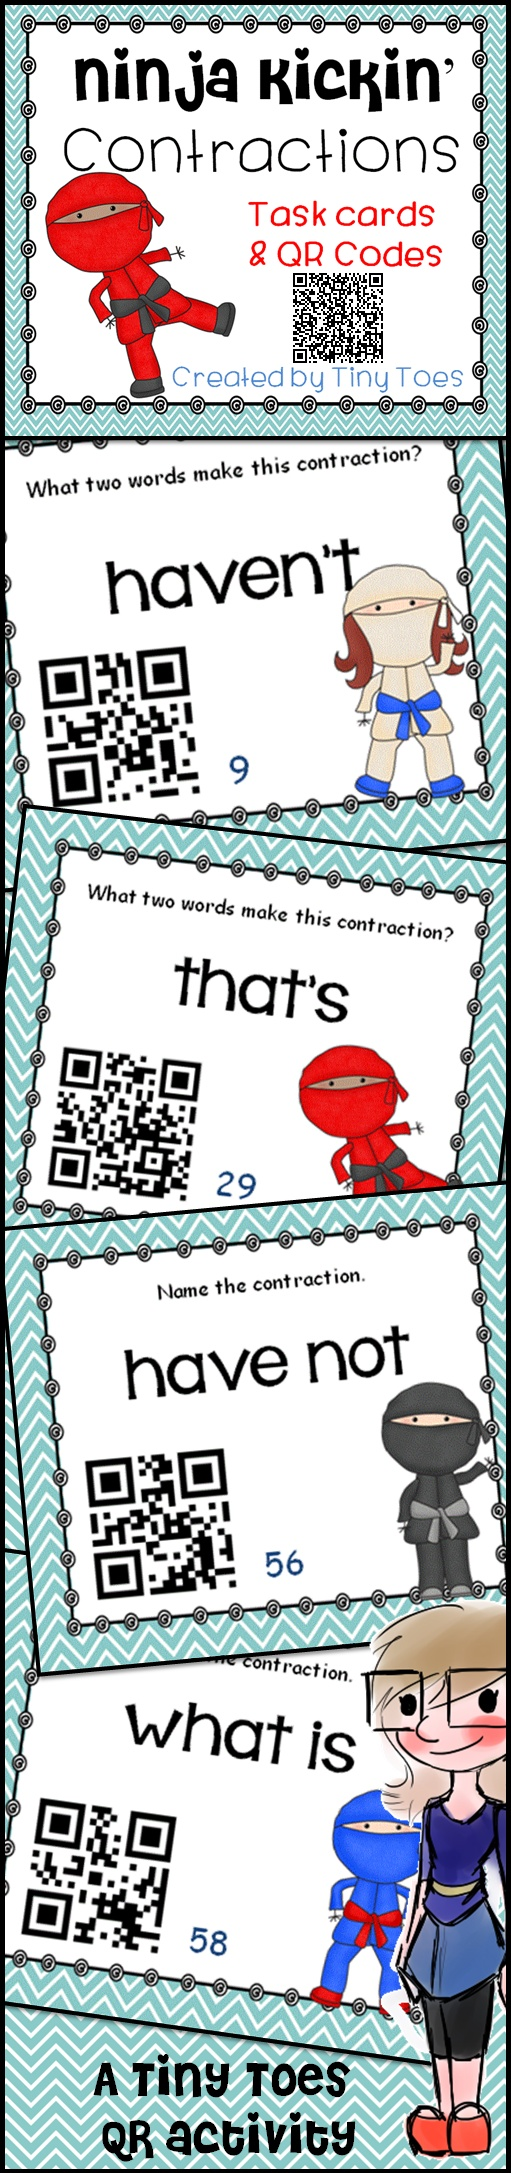 Re-pin me! Get your kids engaged with Ninja Kickin' Contractions! Love QR? I do and I know my kids do too! Get your students active, motivated, and involved with these QR code task cards. So much fun to play especially with the integration of iPods. QR's are great! Simply read the question, decide on your answer, and scan the QR to see if you got it right. Don't have an iPod? No problem! Just use them as task cards! $3